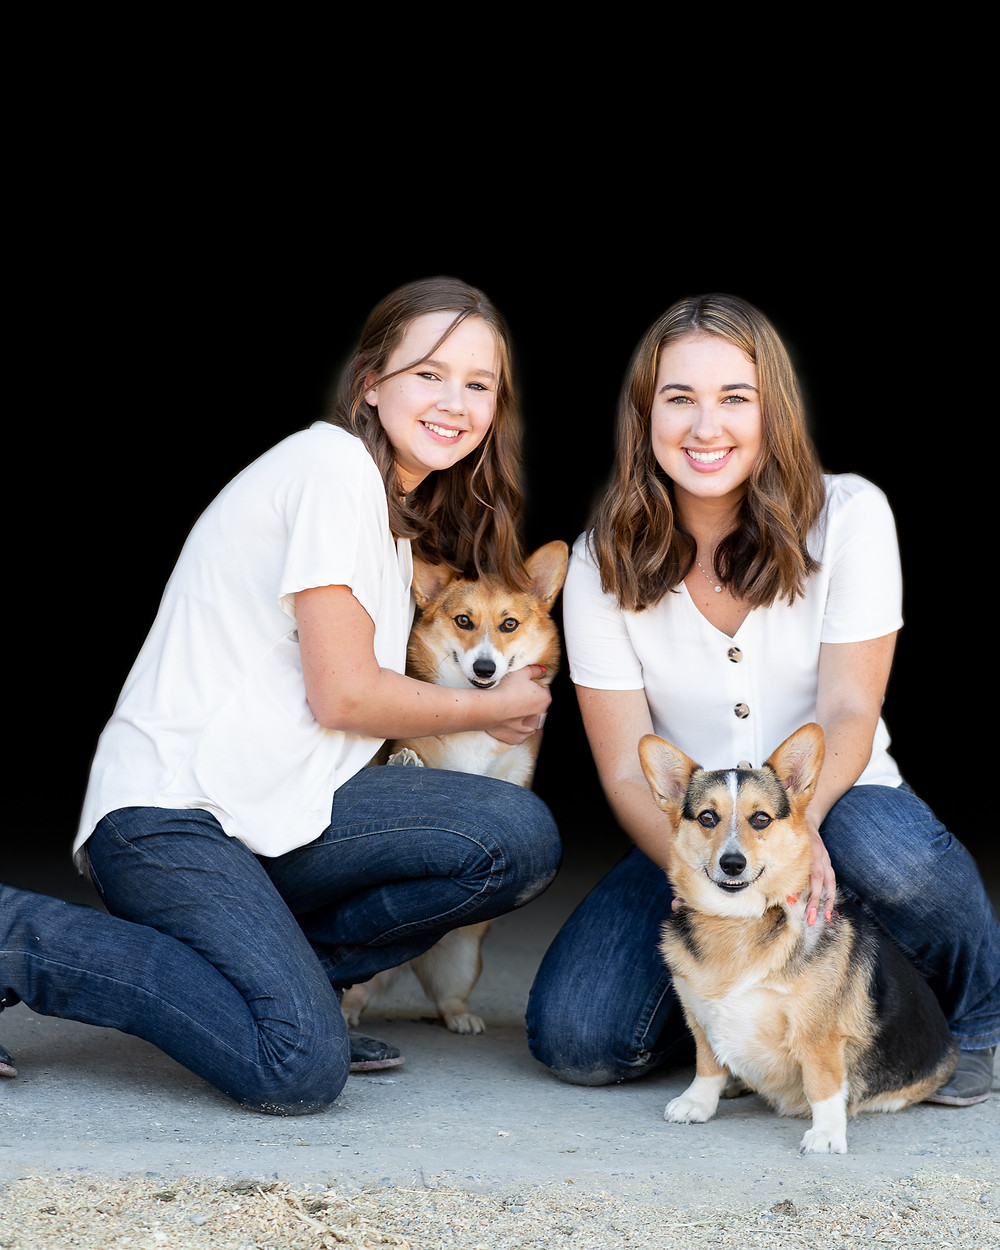 Emily, Sophie, and the corgis